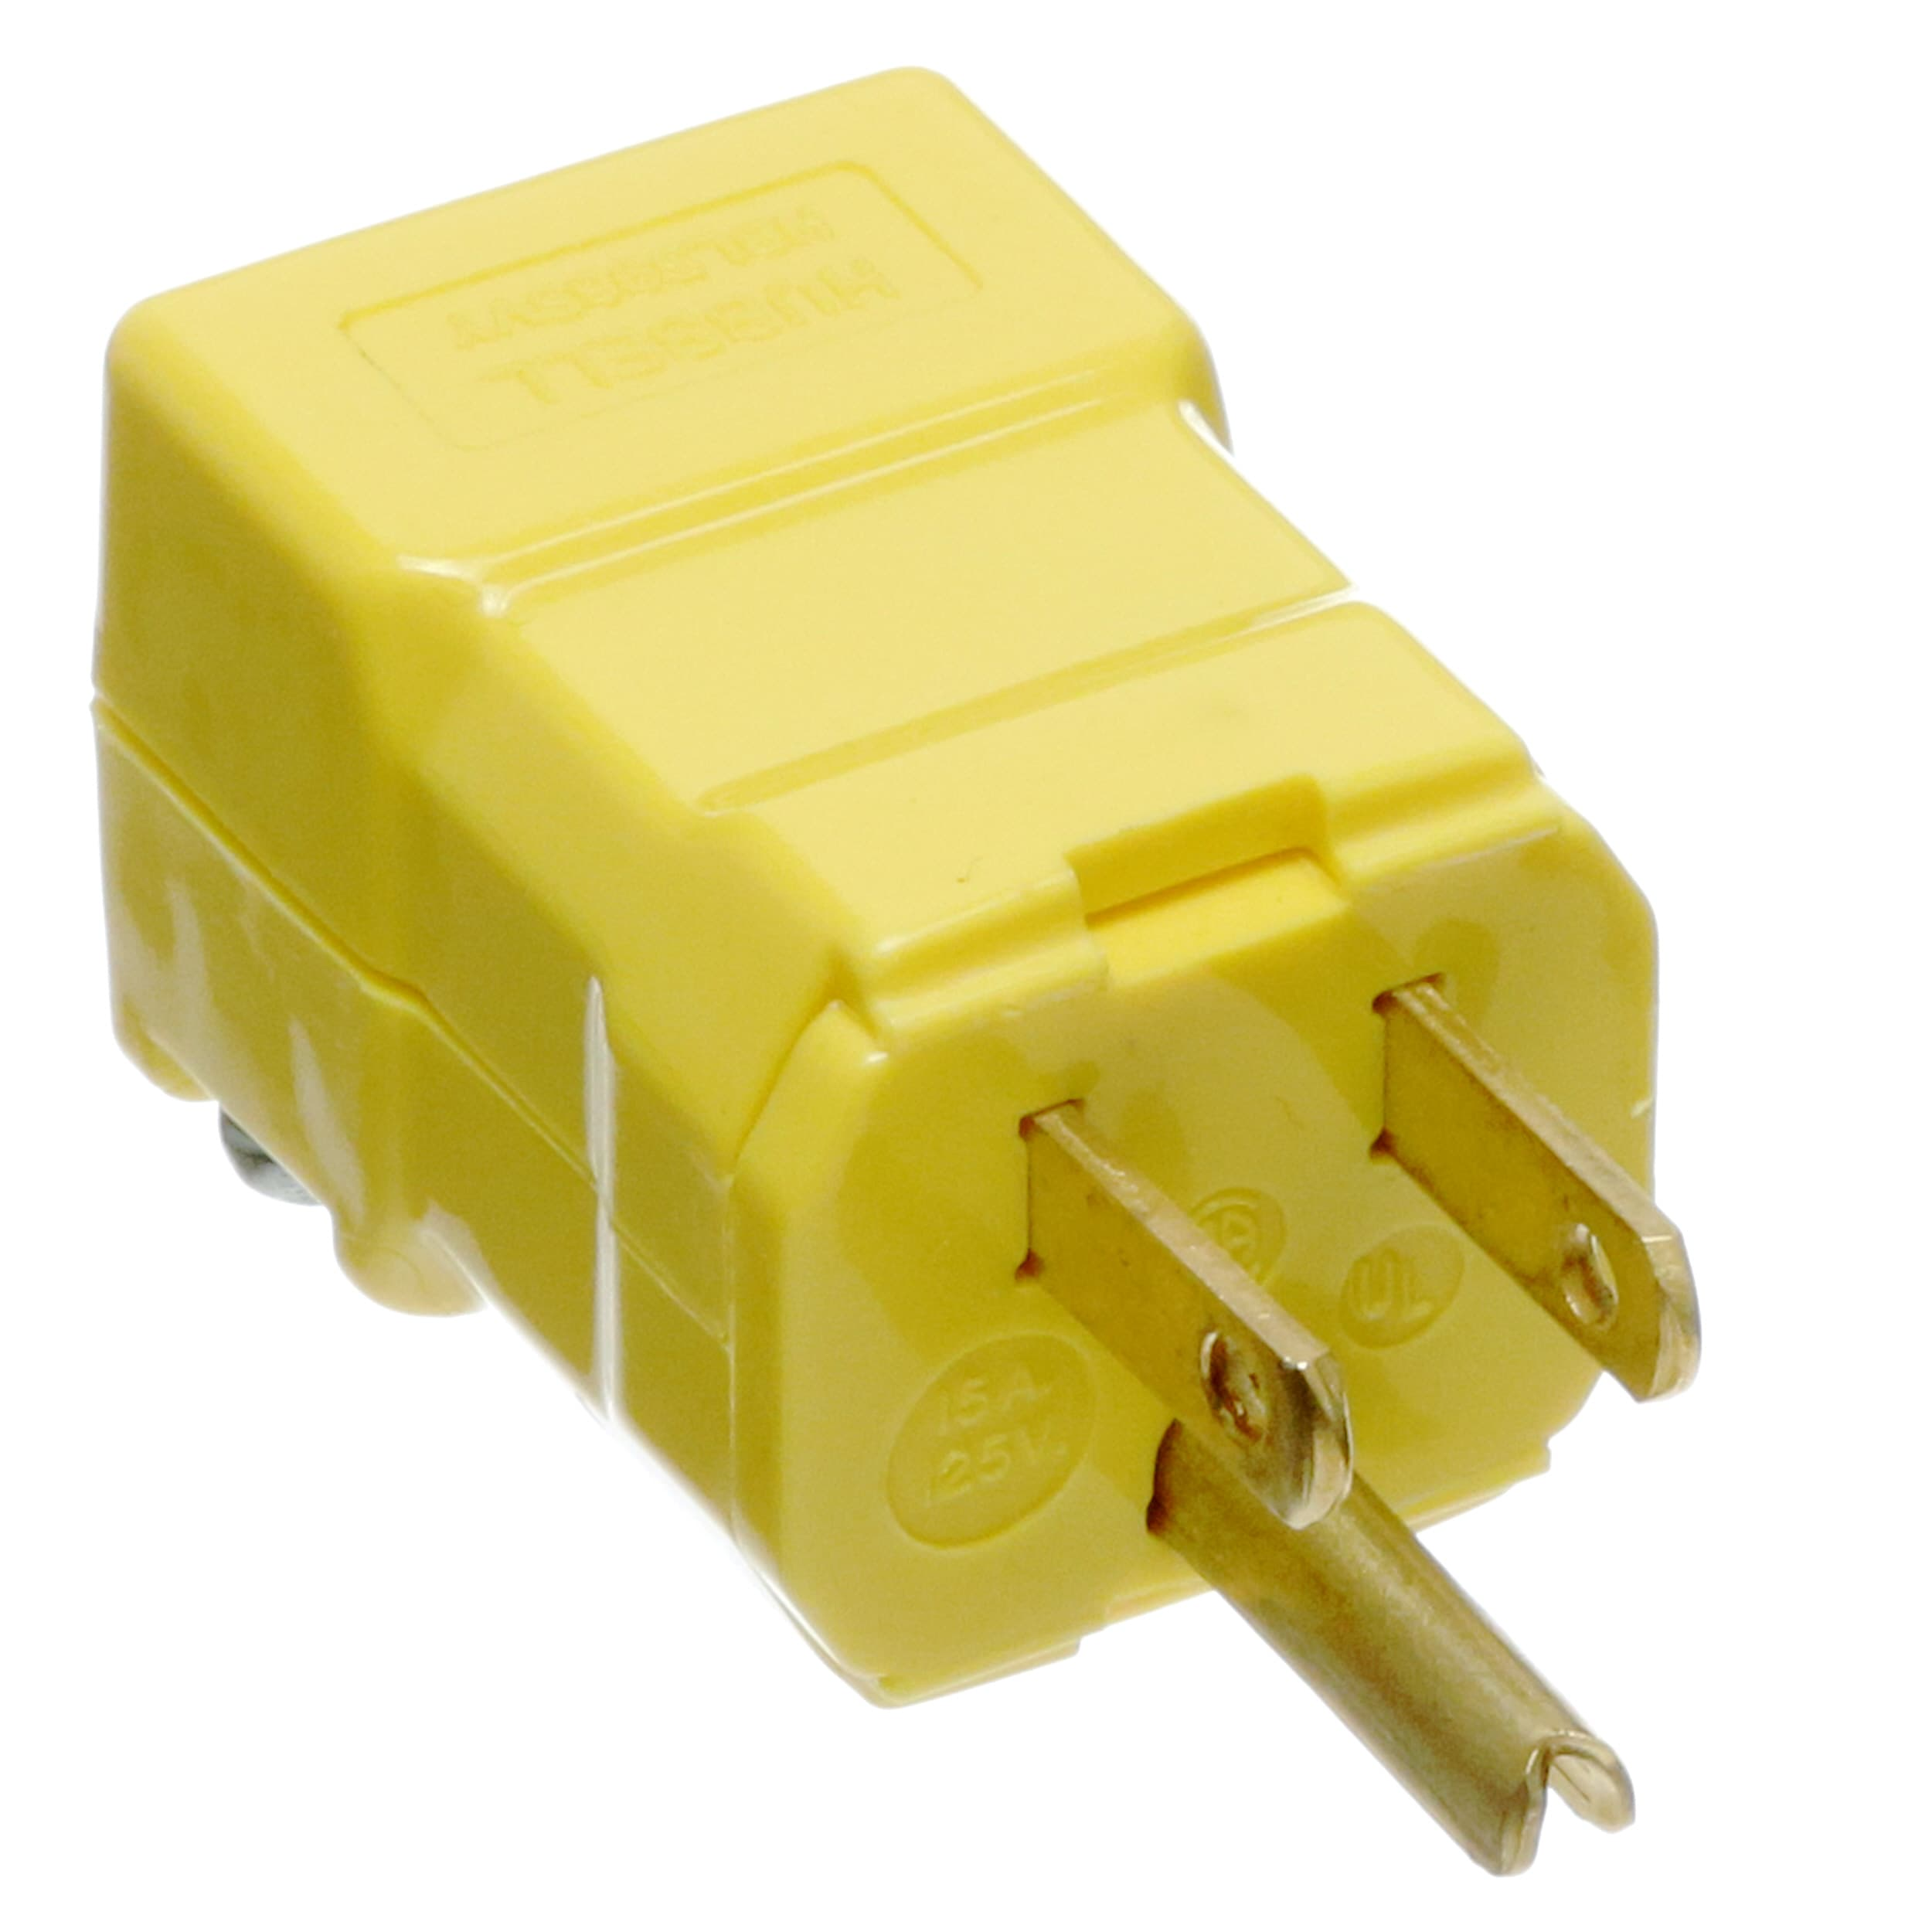 Hubbell HBL5965VY Straight Blade Plug Yellow